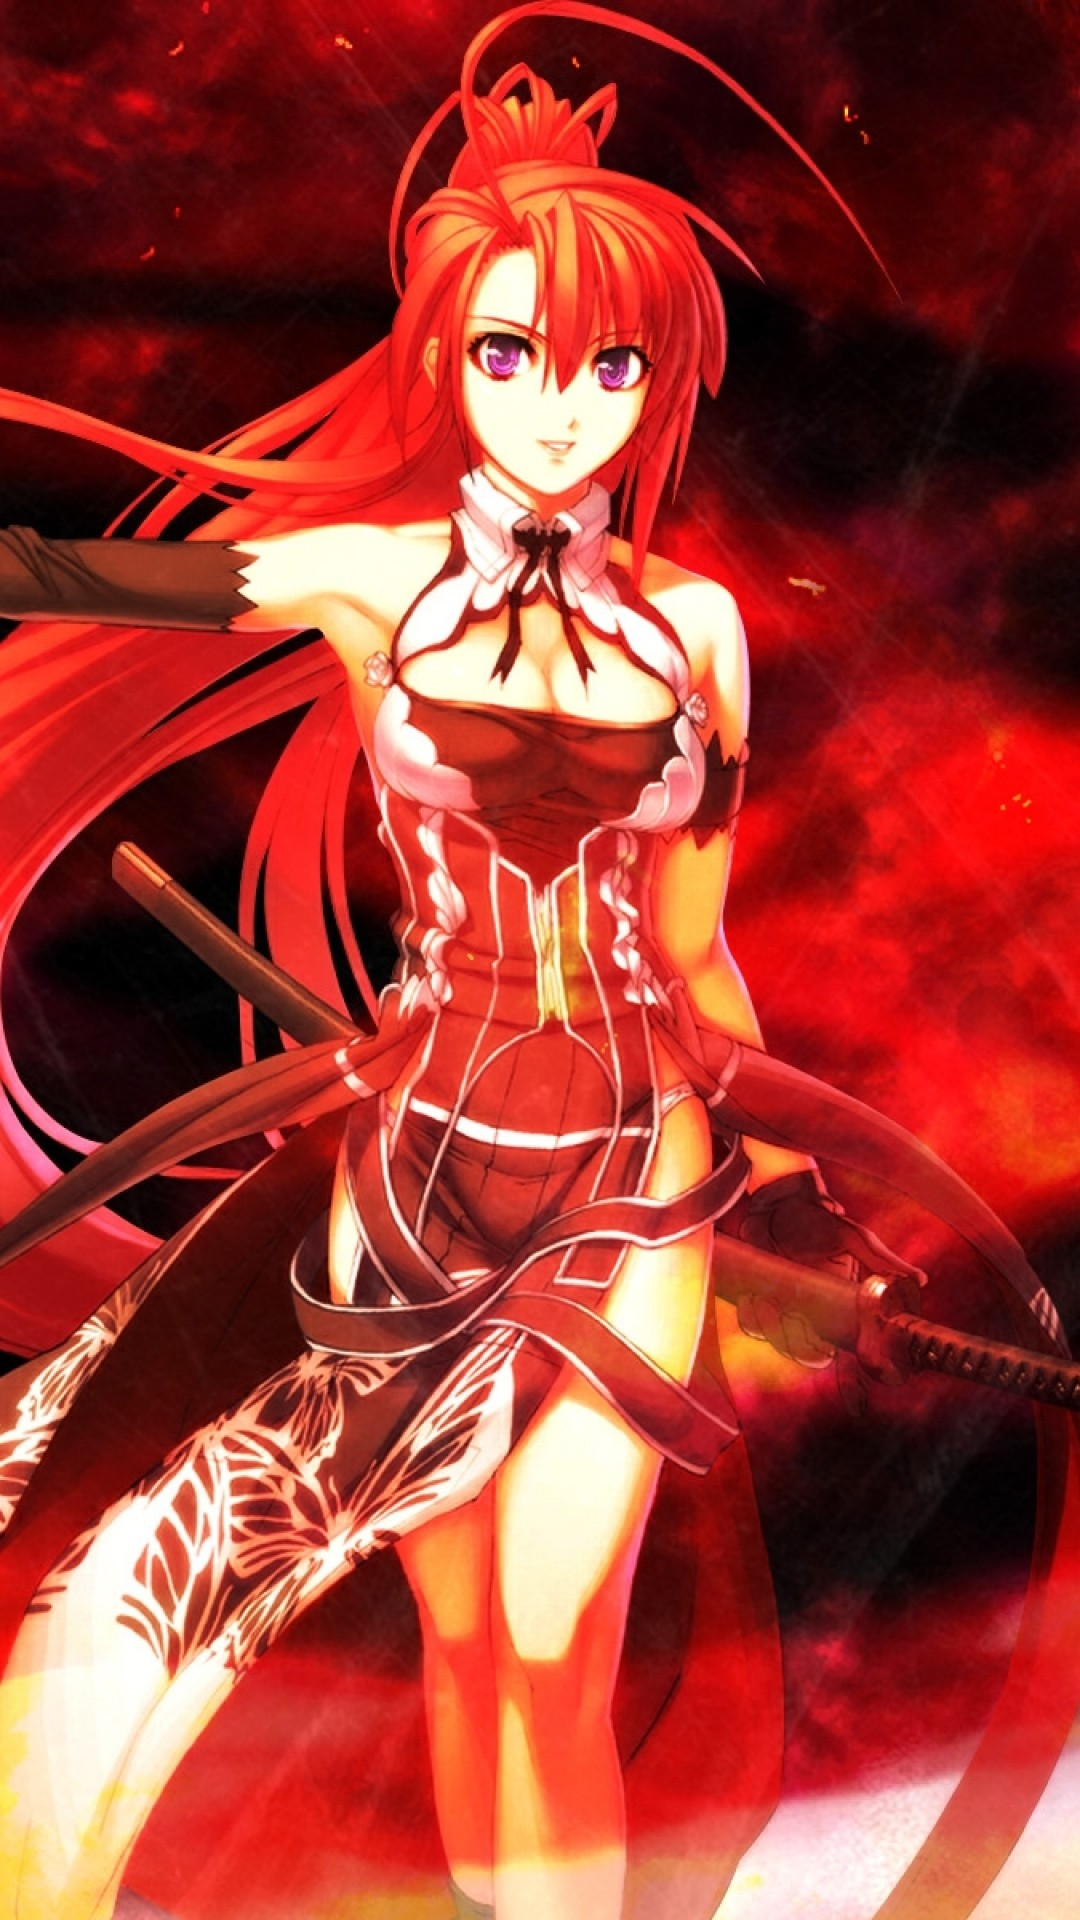 Anime wallpaper 1080x1920 84 images - Girl with sword wallpaper ...